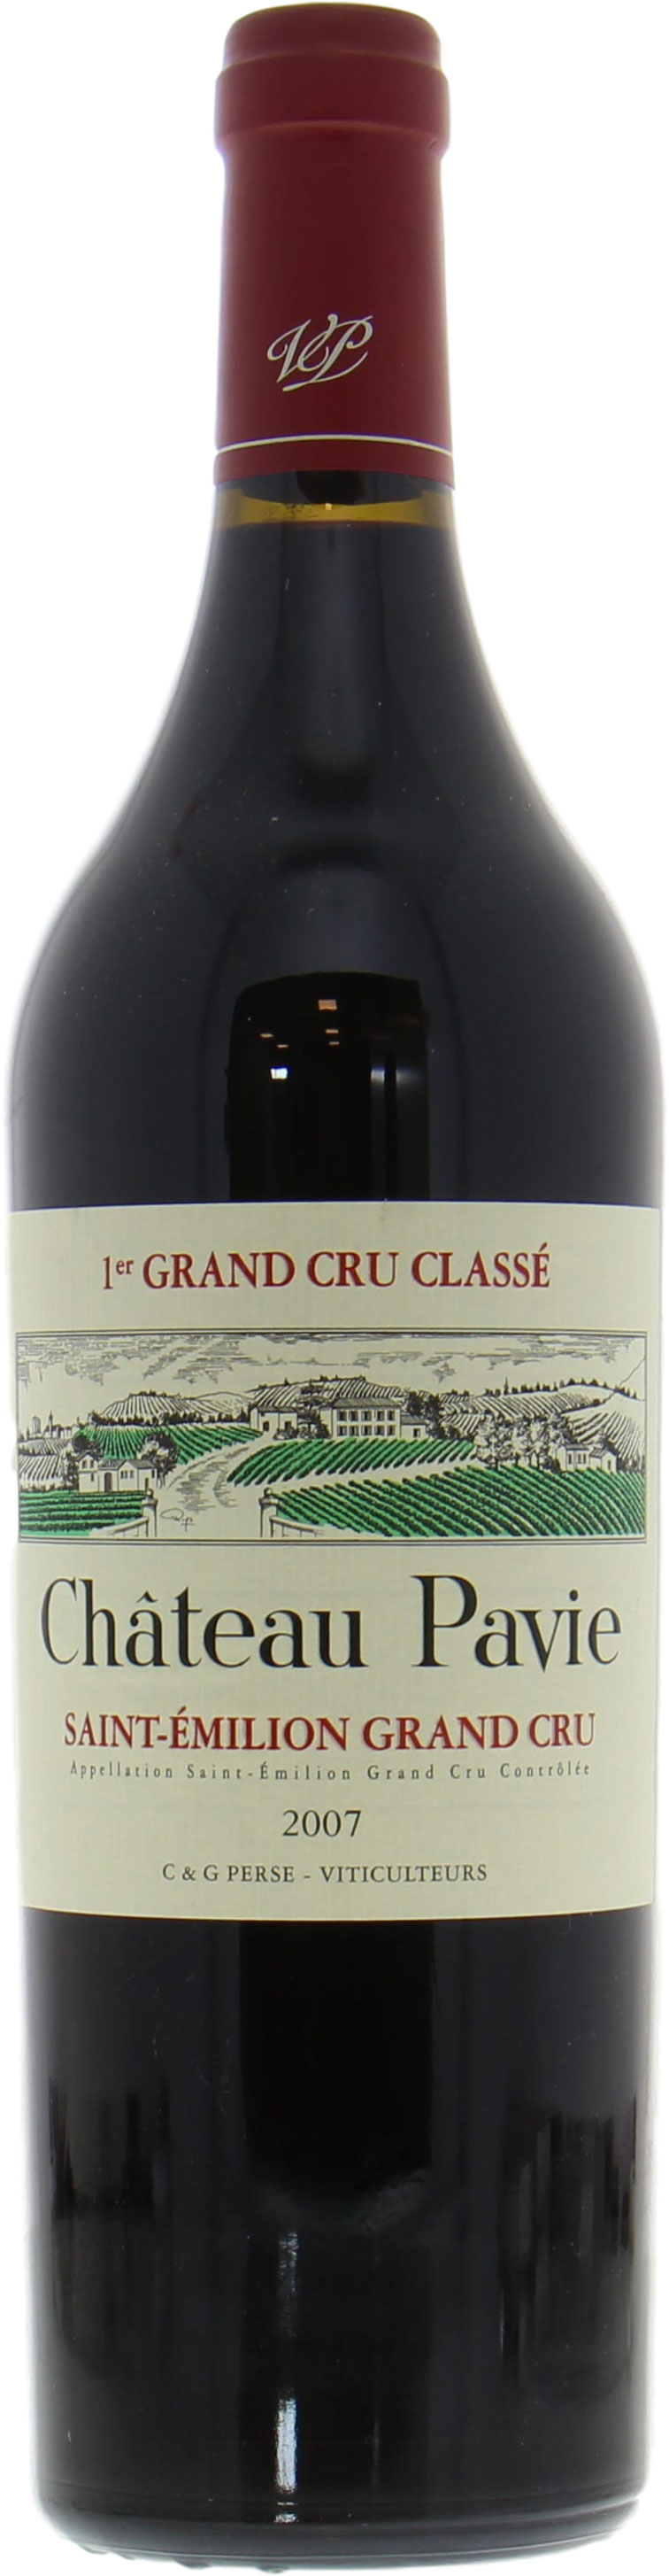 Chateau Pavie - Chateau Pavie